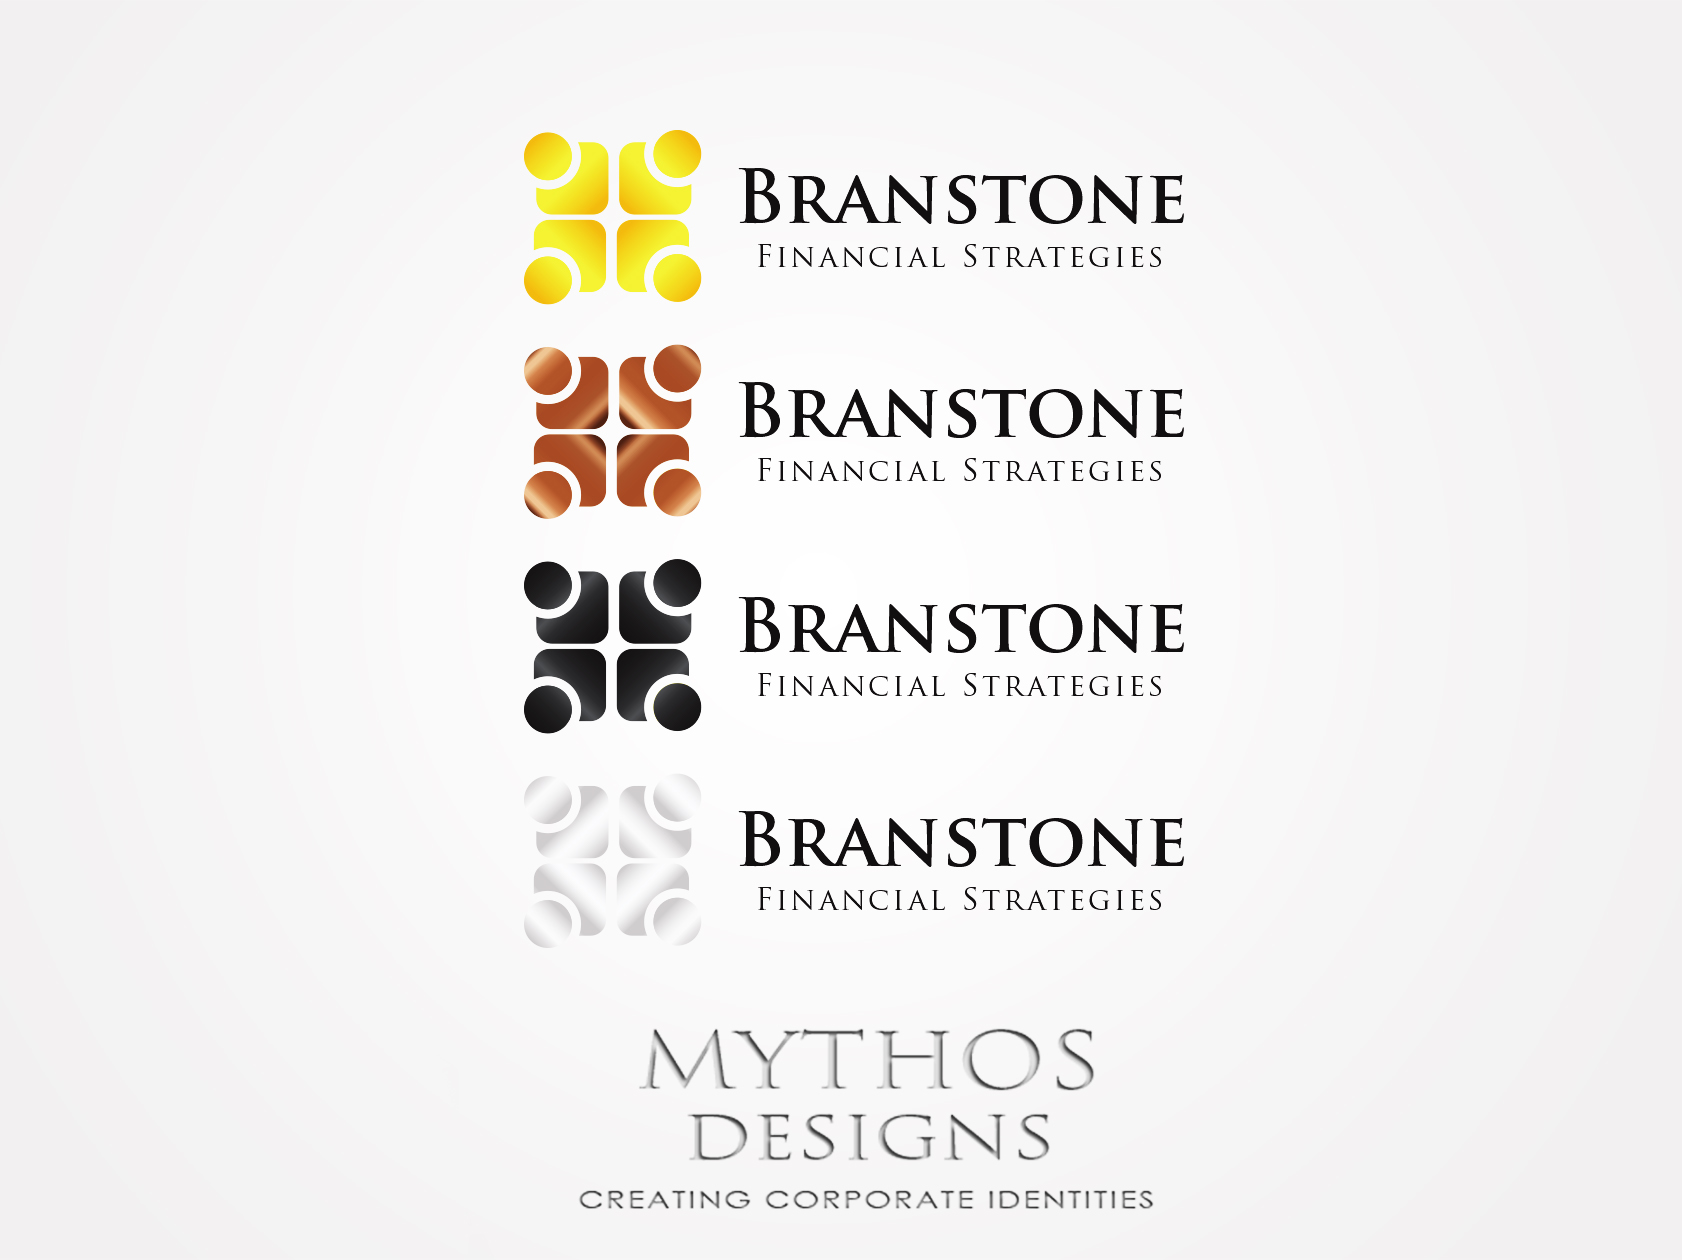 Logo Design by Mythos Designs - Entry No. 84 in the Logo Design Contest Inspiring Logo Design for Branstone Financial Strategies.